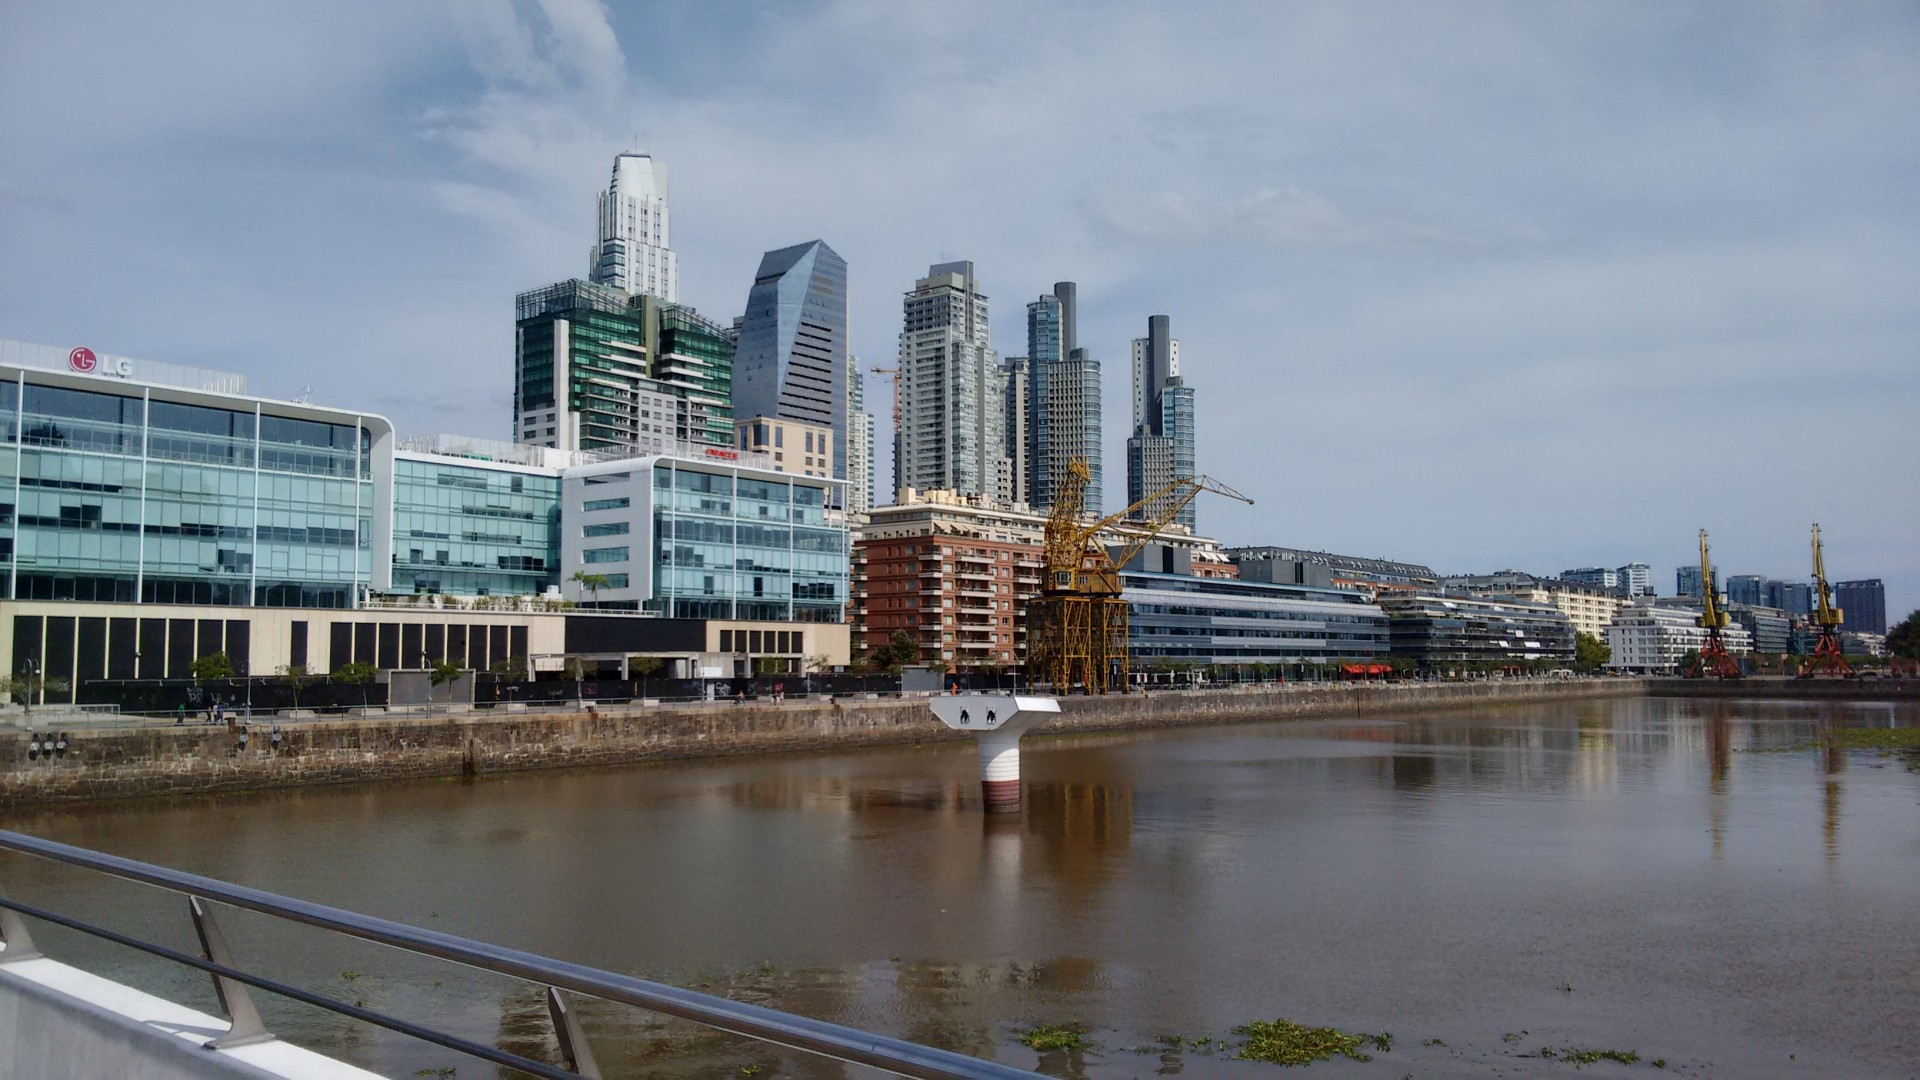 Puerto Madero, or every other big city near a river?